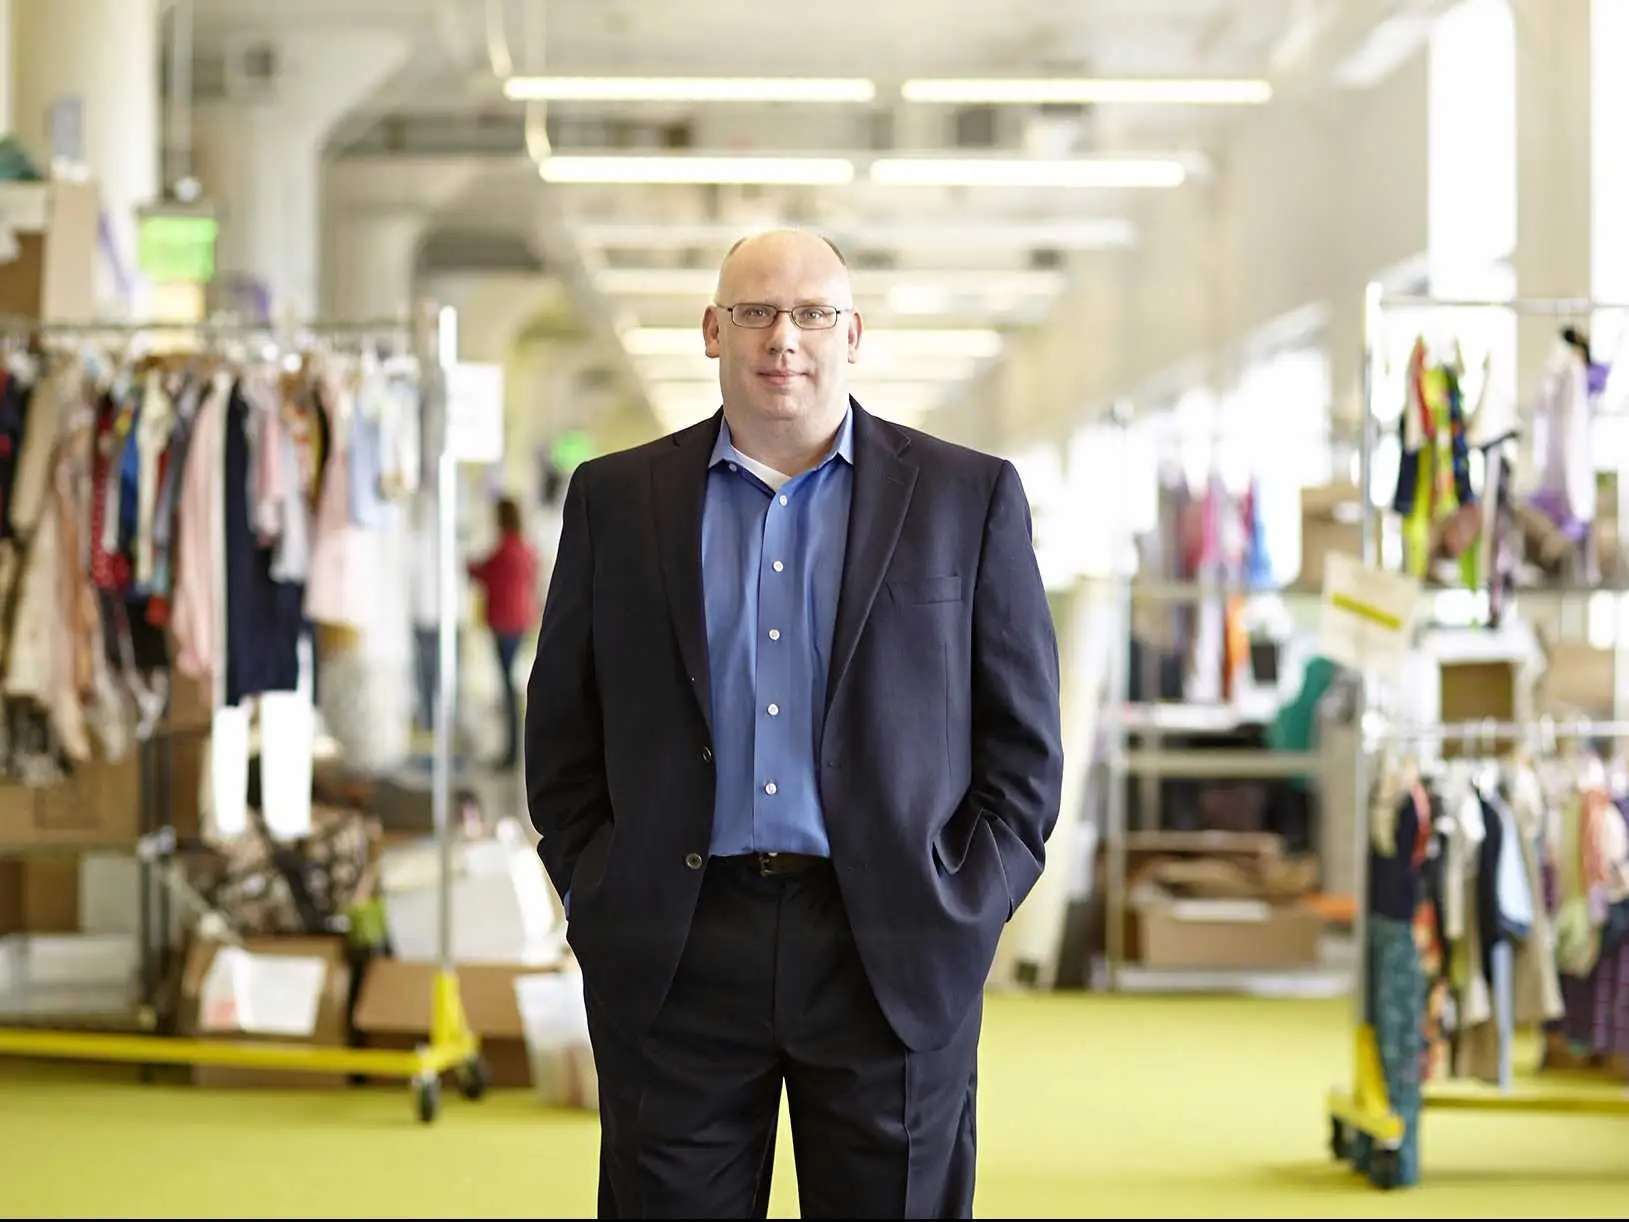 Zulily is applying the TJ Maxx model to e-commerce.